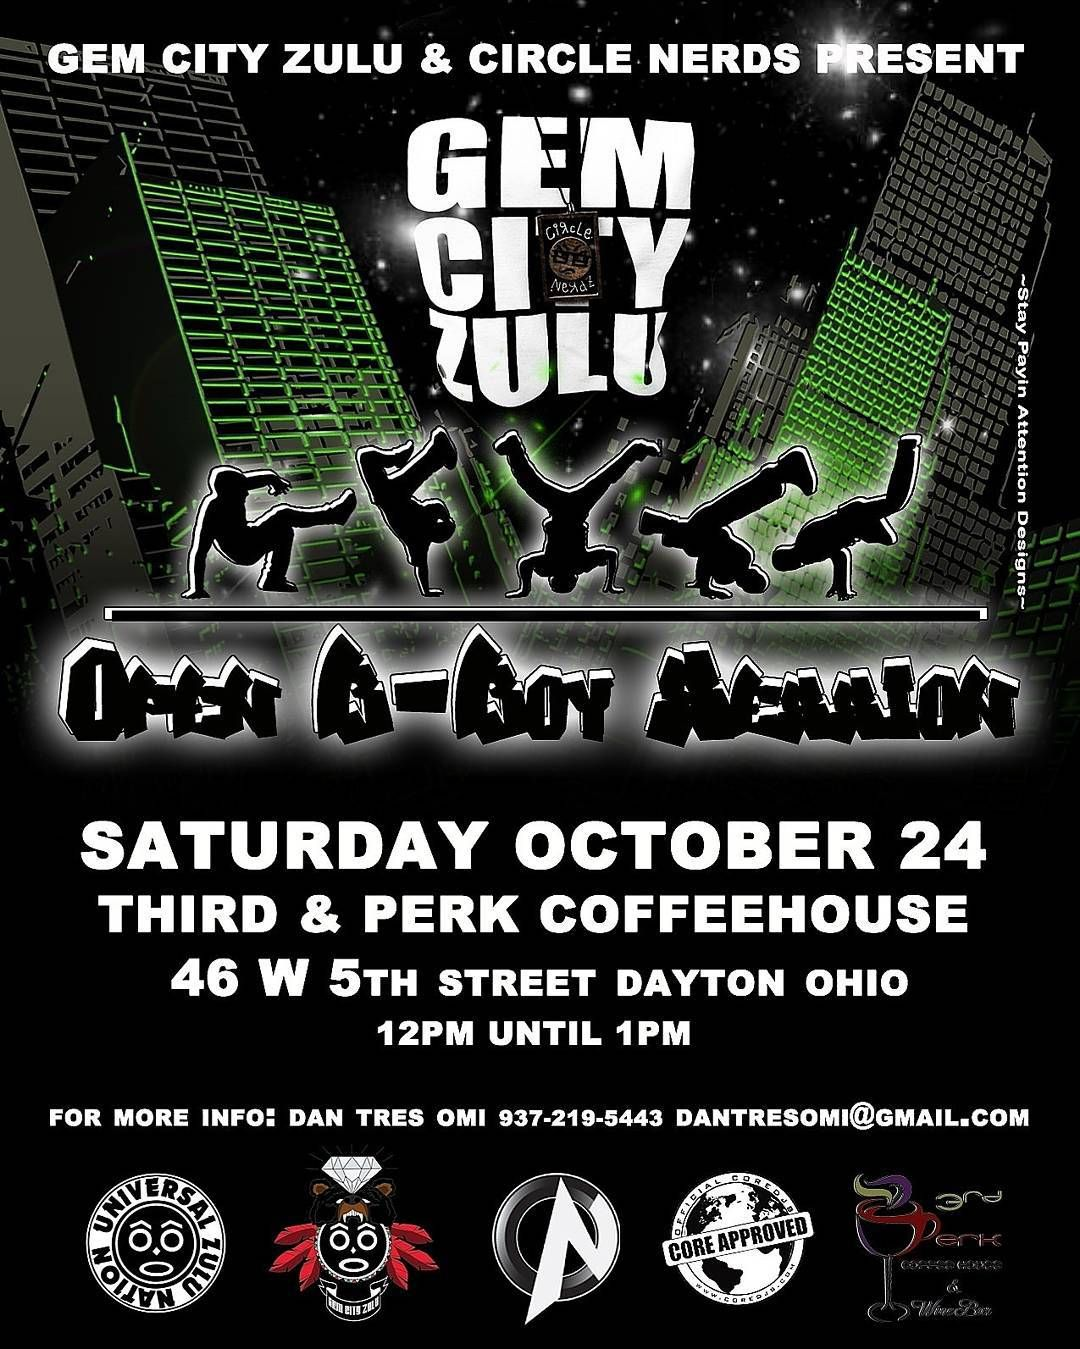 TOMORROW!! The Gem City Zulu And Circle Nerds Present An Open B-Boy Session October 24th At @ThirdPerk CoffeeHouse 46 W Fifth St. Dayton Ohio 12pm To 1pm For More Info Contact Dan Tres Omi At 937-219-5443 DJ SKNO CORE DJ's @COREDJSKNO Do You Need A REAL DJ For Your Club Sports Event Concert Grand Opening Corporate Event Conference Wedding Or Mixtape? For All Serious Inquiries With A Budget ONLY Contact Us At whoknowsdjskno@gmail.com DJ SKNO CORE DJ's Thank You! #CoreDJApproved #TheCoreDJ's…